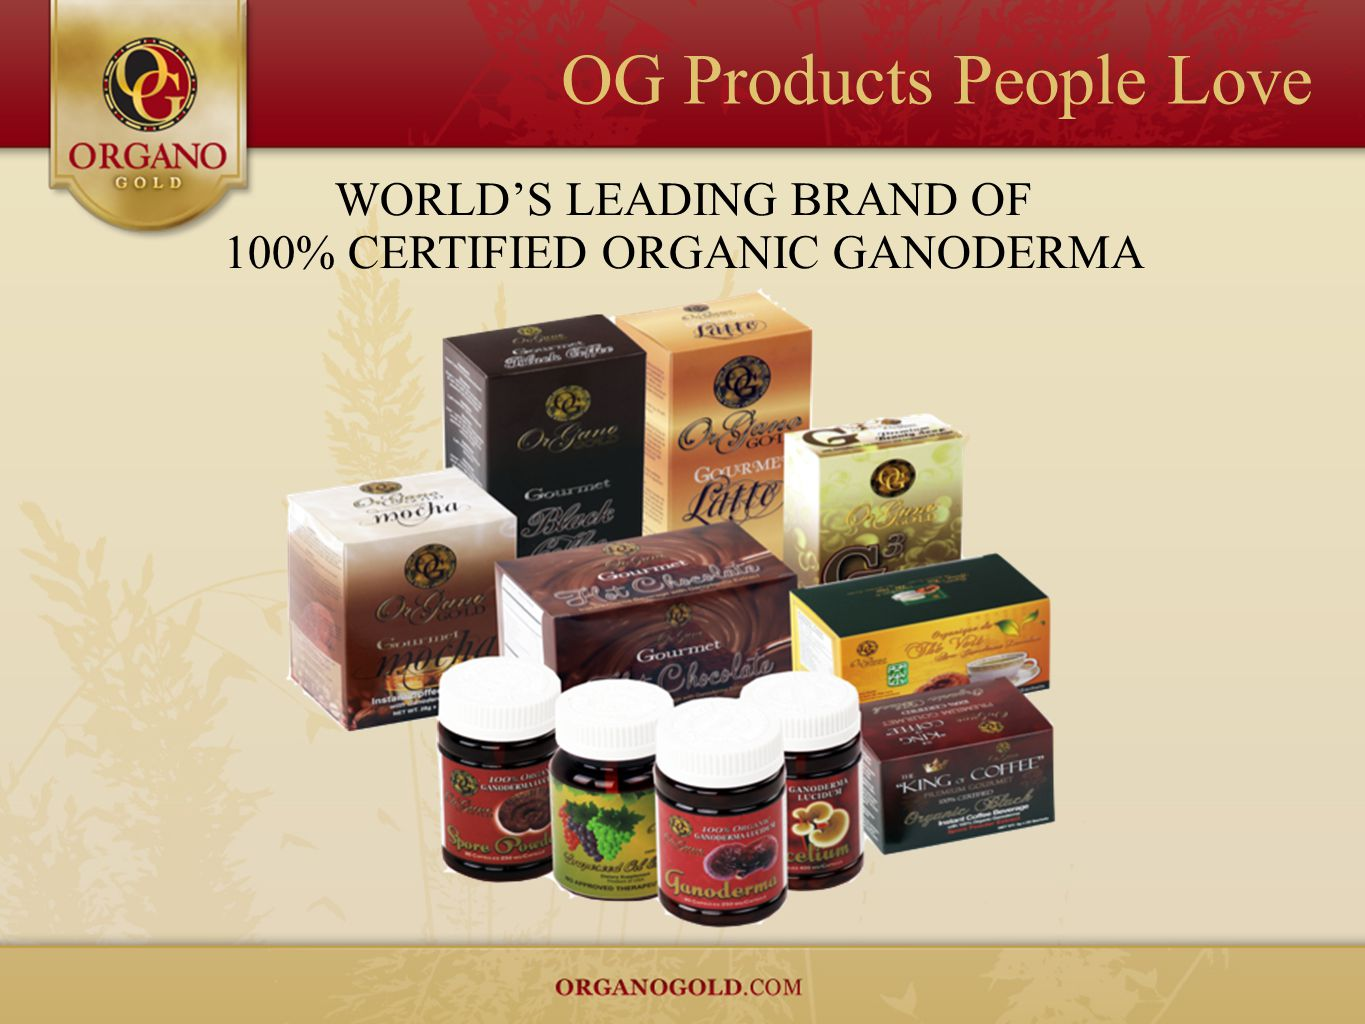 OG Products People Love